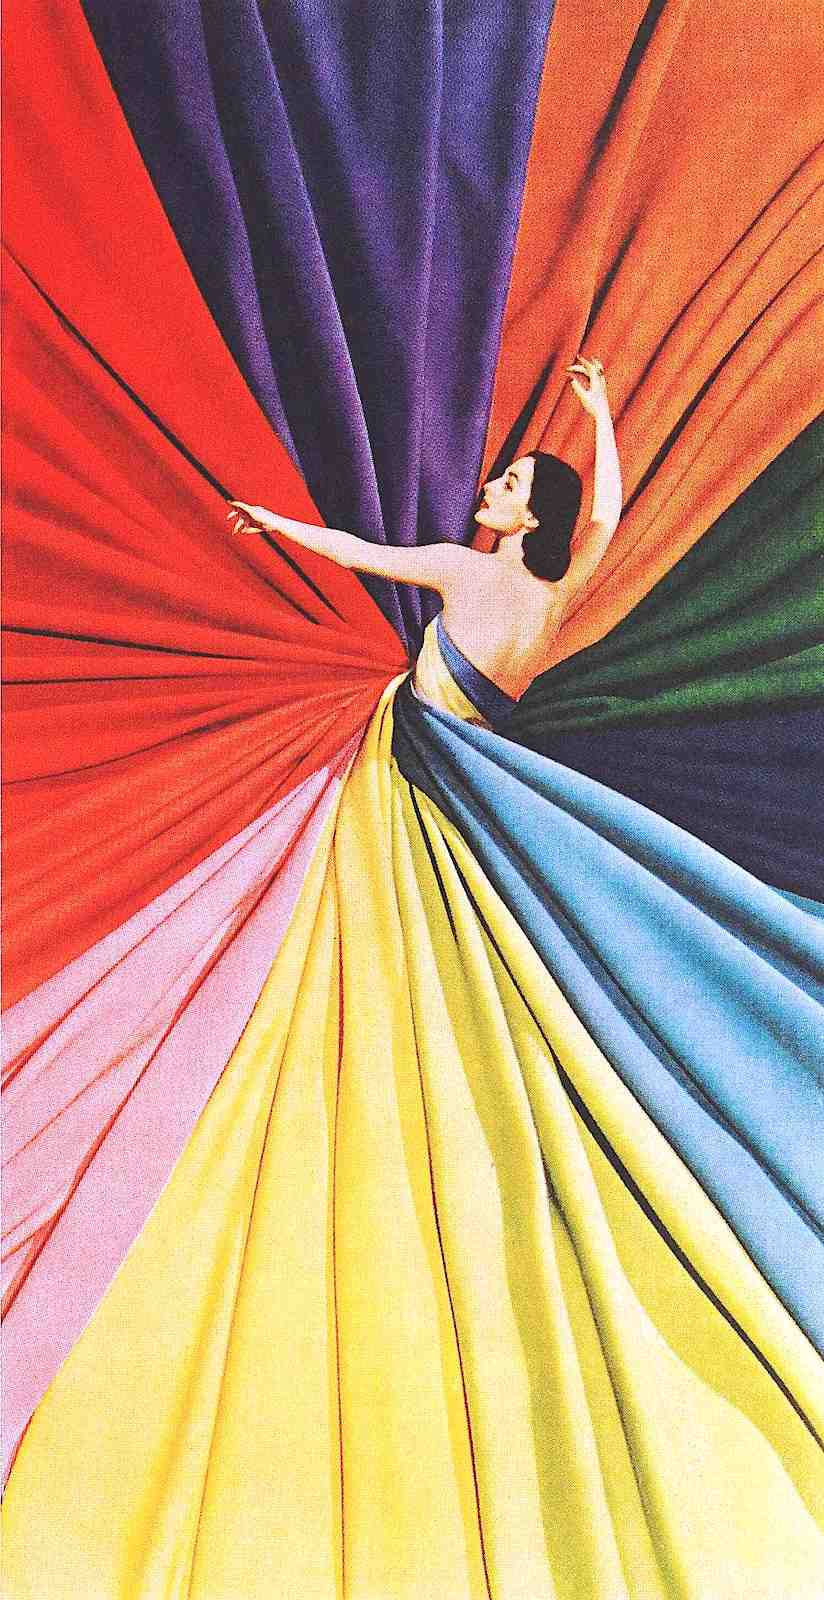 1946 magazine advertisement, a photograph of a woman twisted in multi-colored fabric